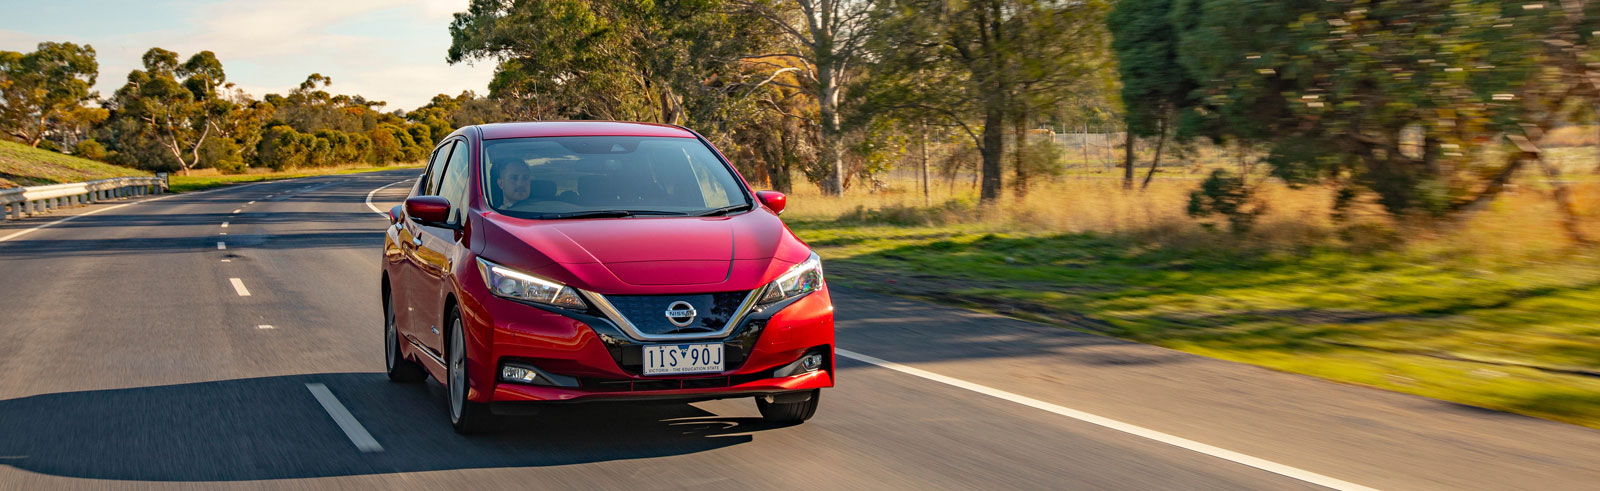 Nissan Leaf now available in Australia, costs AUD 49,990